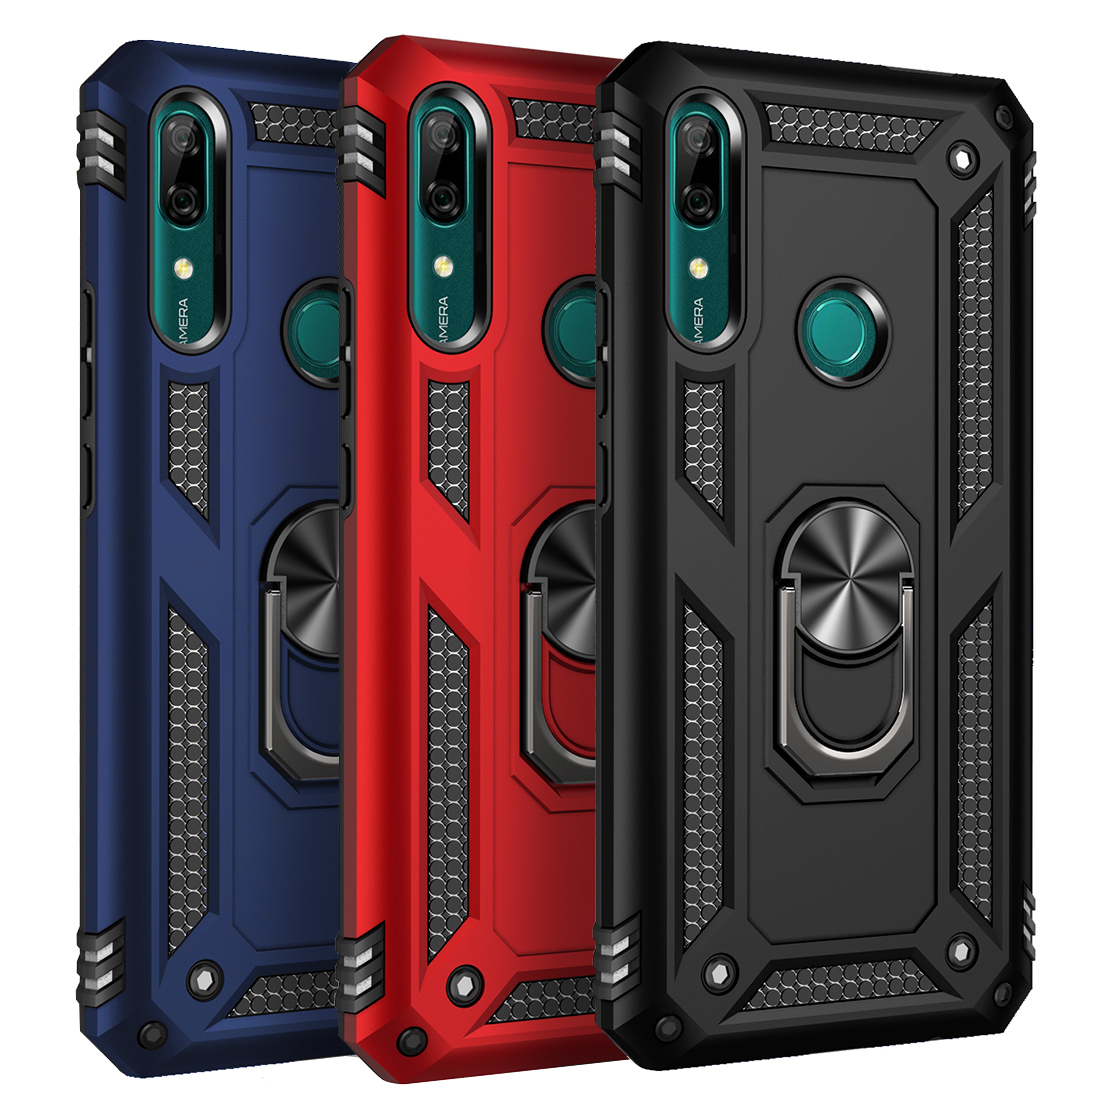 Magnetic Ring Case For Huawei P Smart Z P20 P30 Pro Mate 20 30 Nova 5i Honor 10 Lite Y5 Y6 Y7 Y9 Prime 2019 Silicone Armor Cover